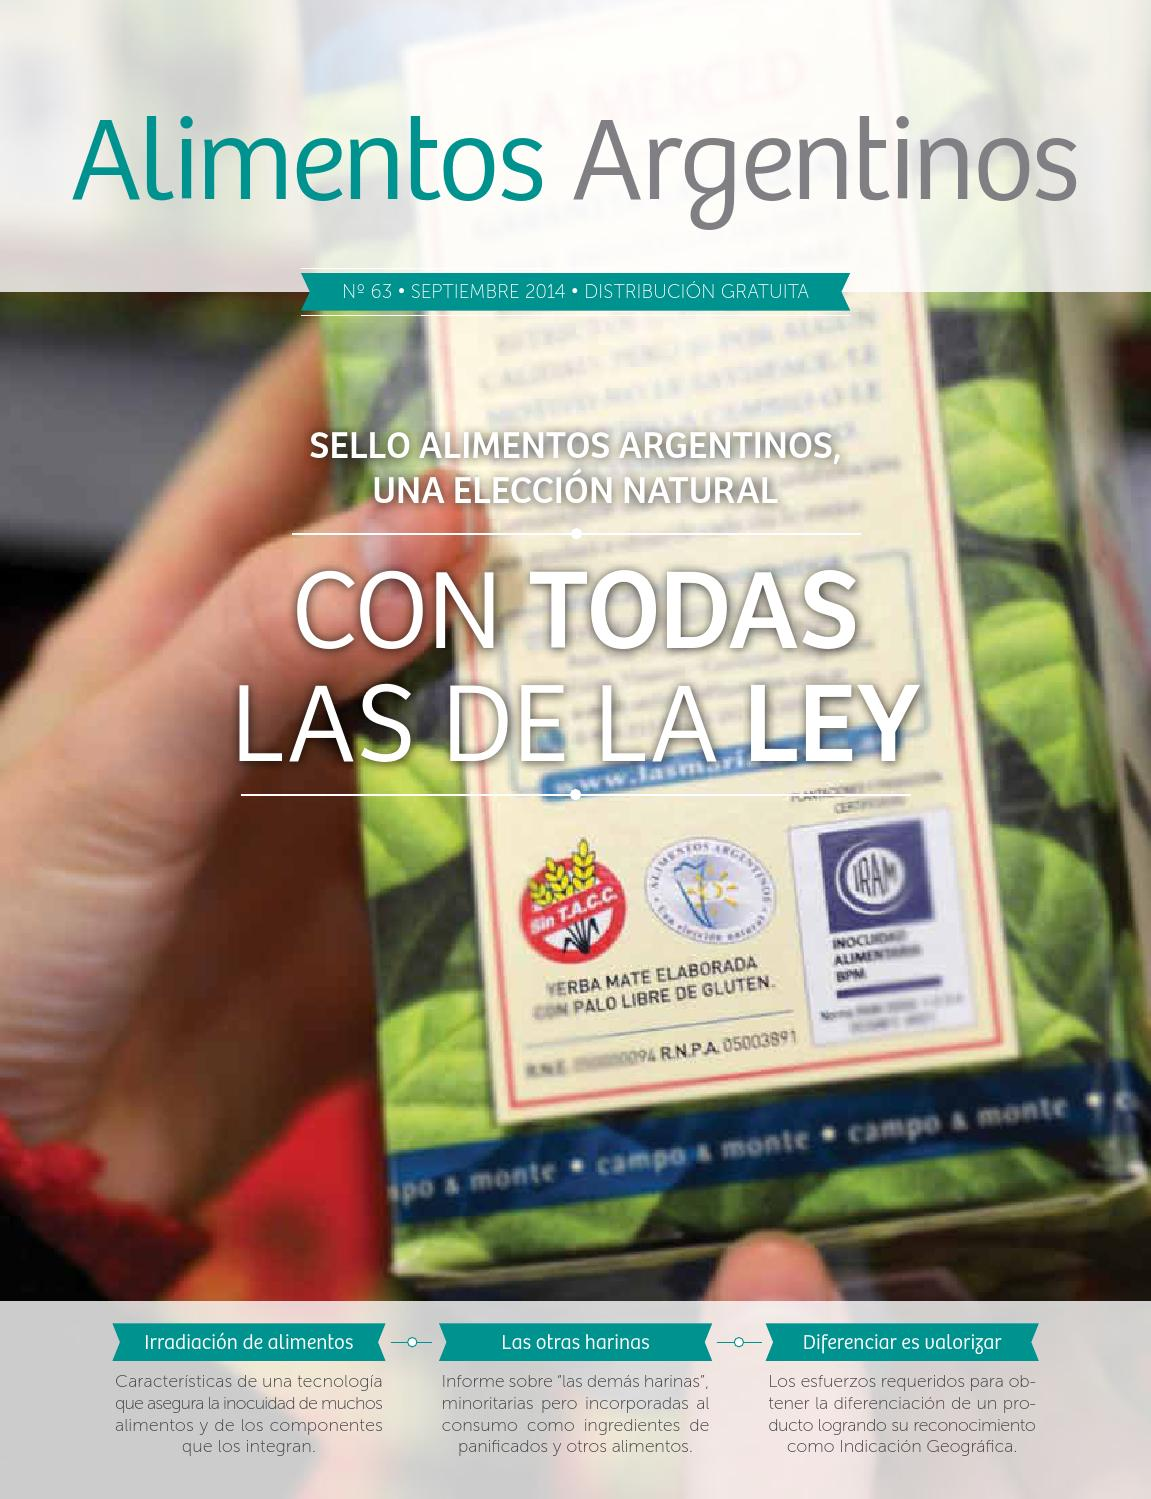 Issuu revista alimentos argentinos n 63 by alimentos for Revistas del espectaculo argentino